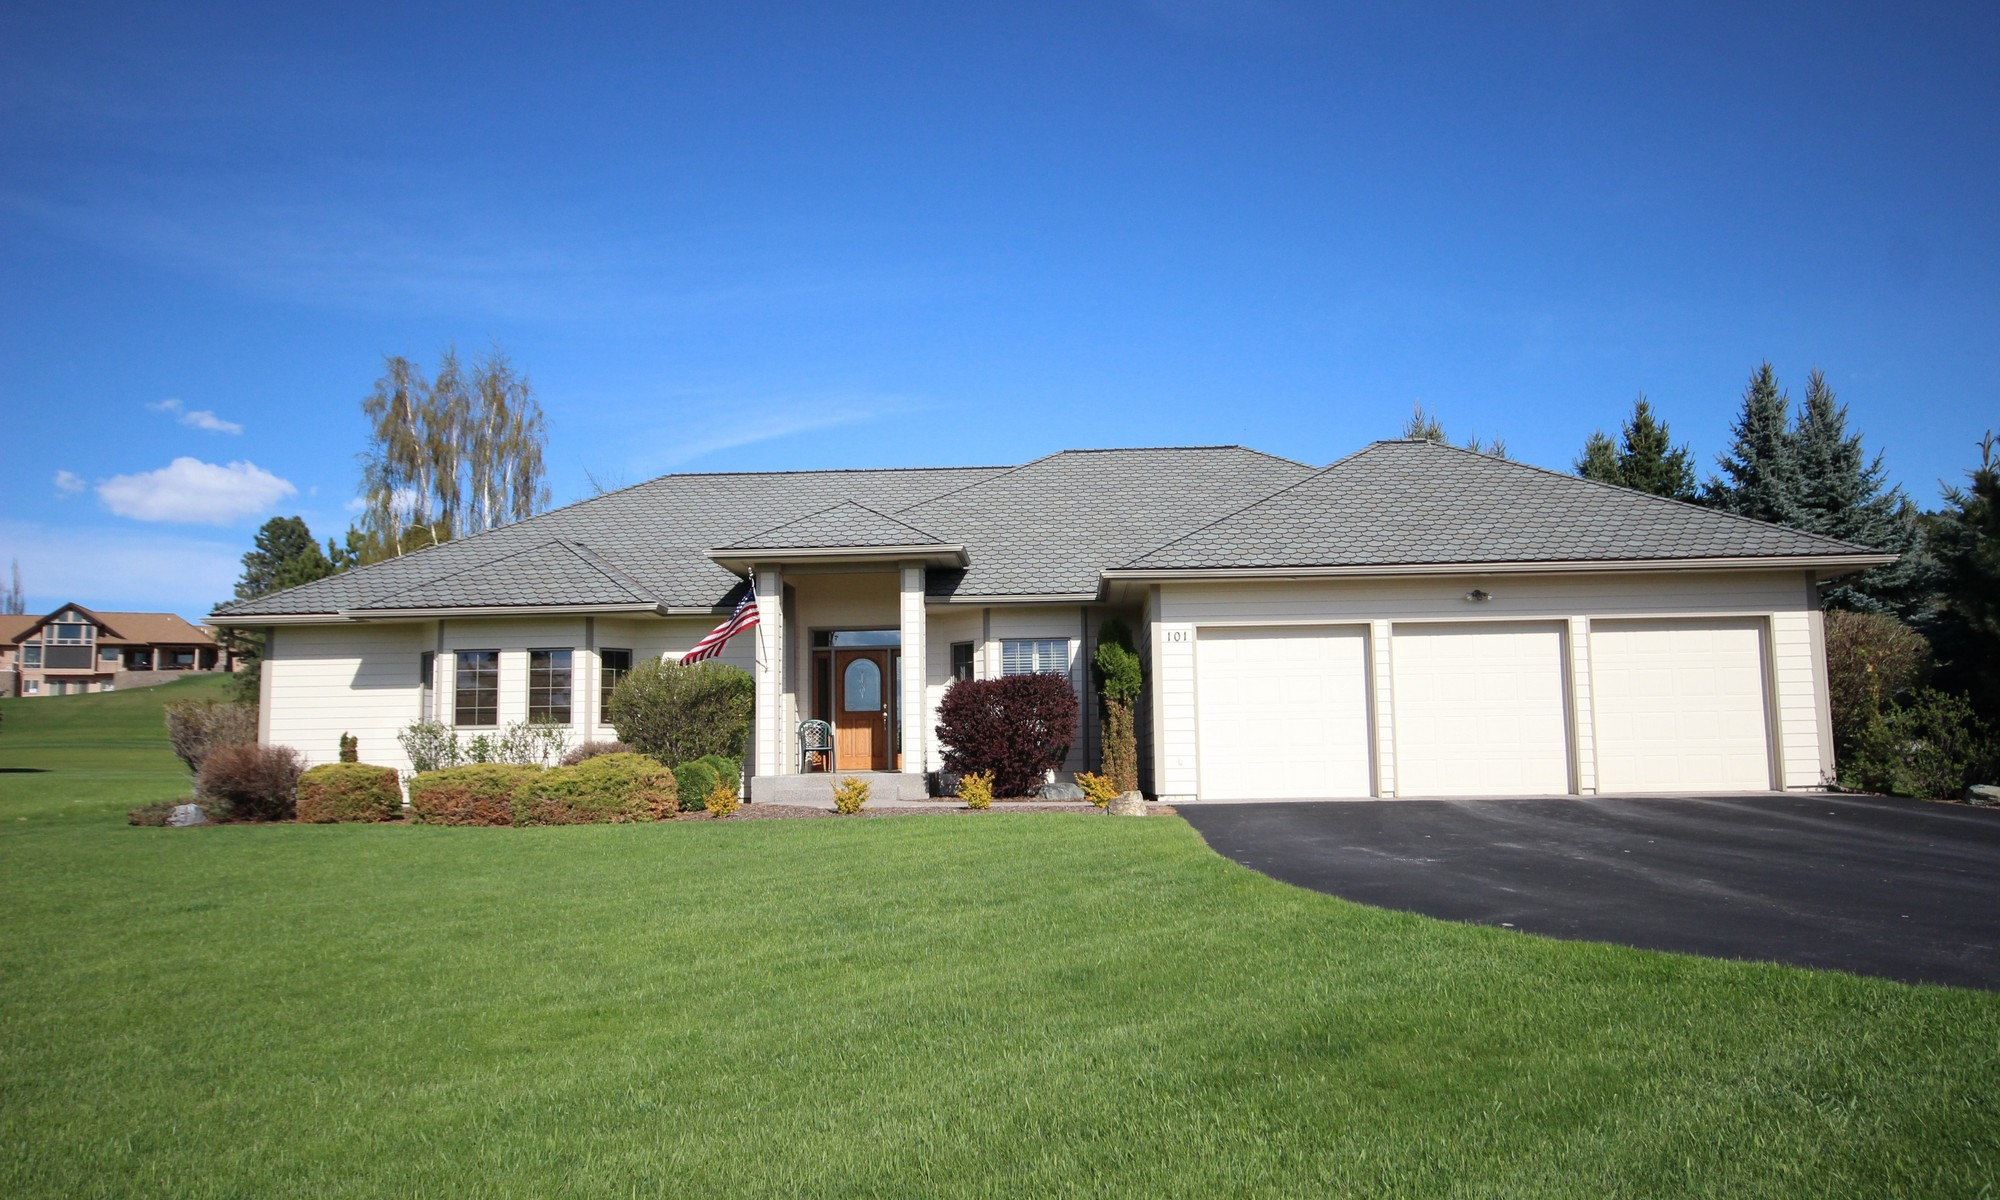 Single Family Home for Sale at Eagle Bend Golf Course Living 101 Whitetail Court Bigfork, Montana 59911 United States